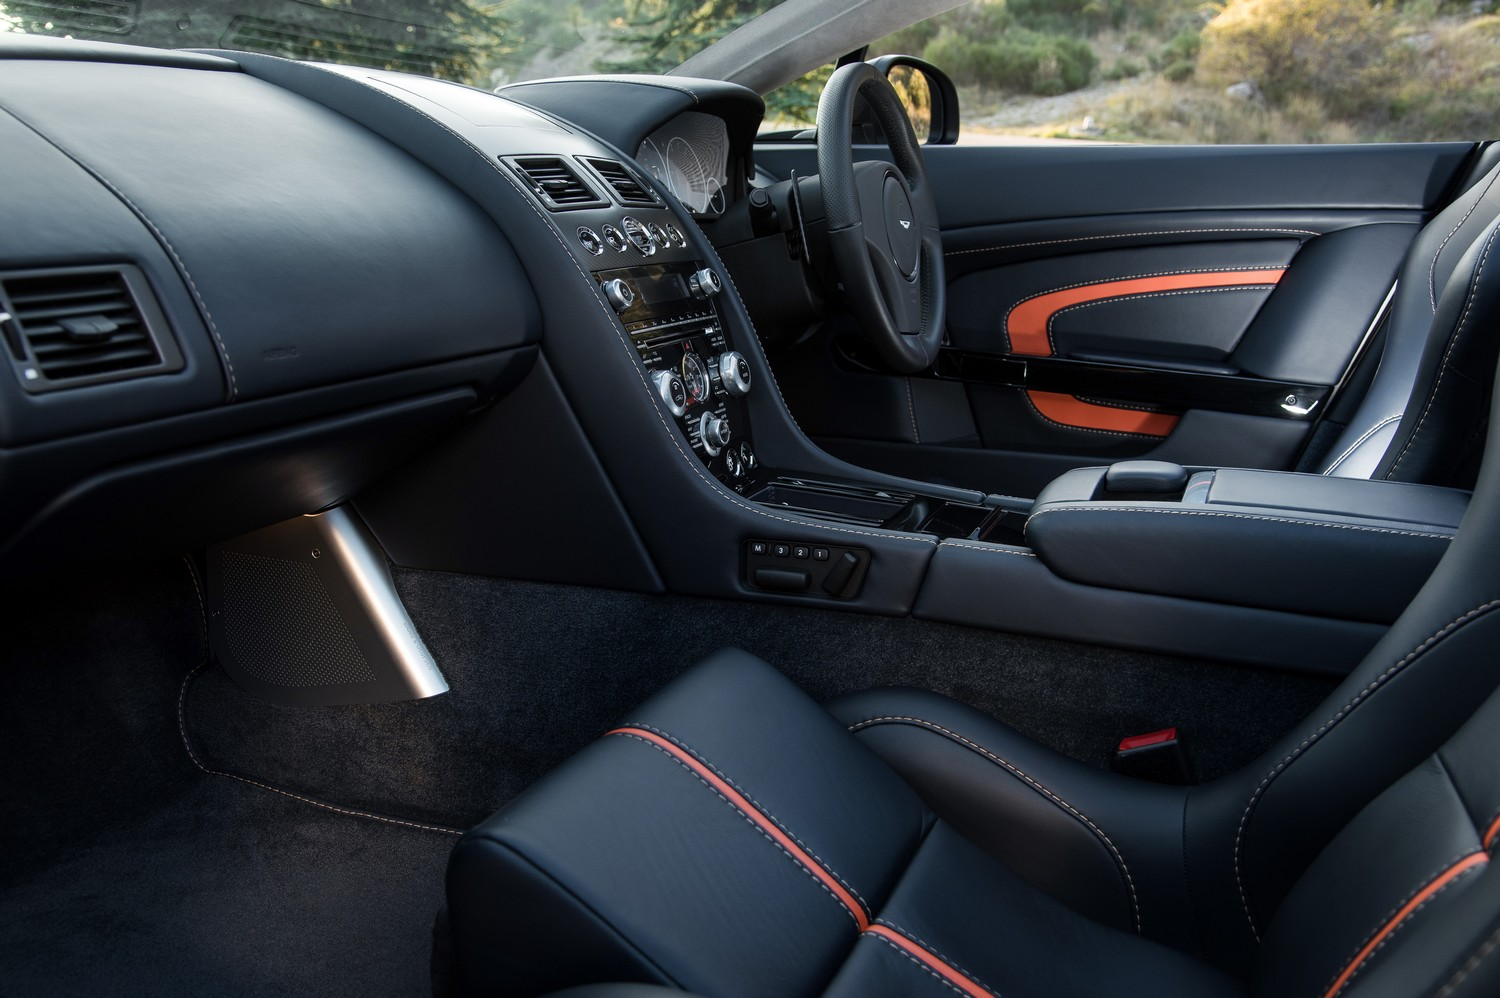 We get the keys to the 565bhp, 457 lbft, 0-60 in 3.9 seconds, 201mph, £147,000.00 Aston Martin V12 Vantage S Roadster as part of Luxurious Magazines invite ...